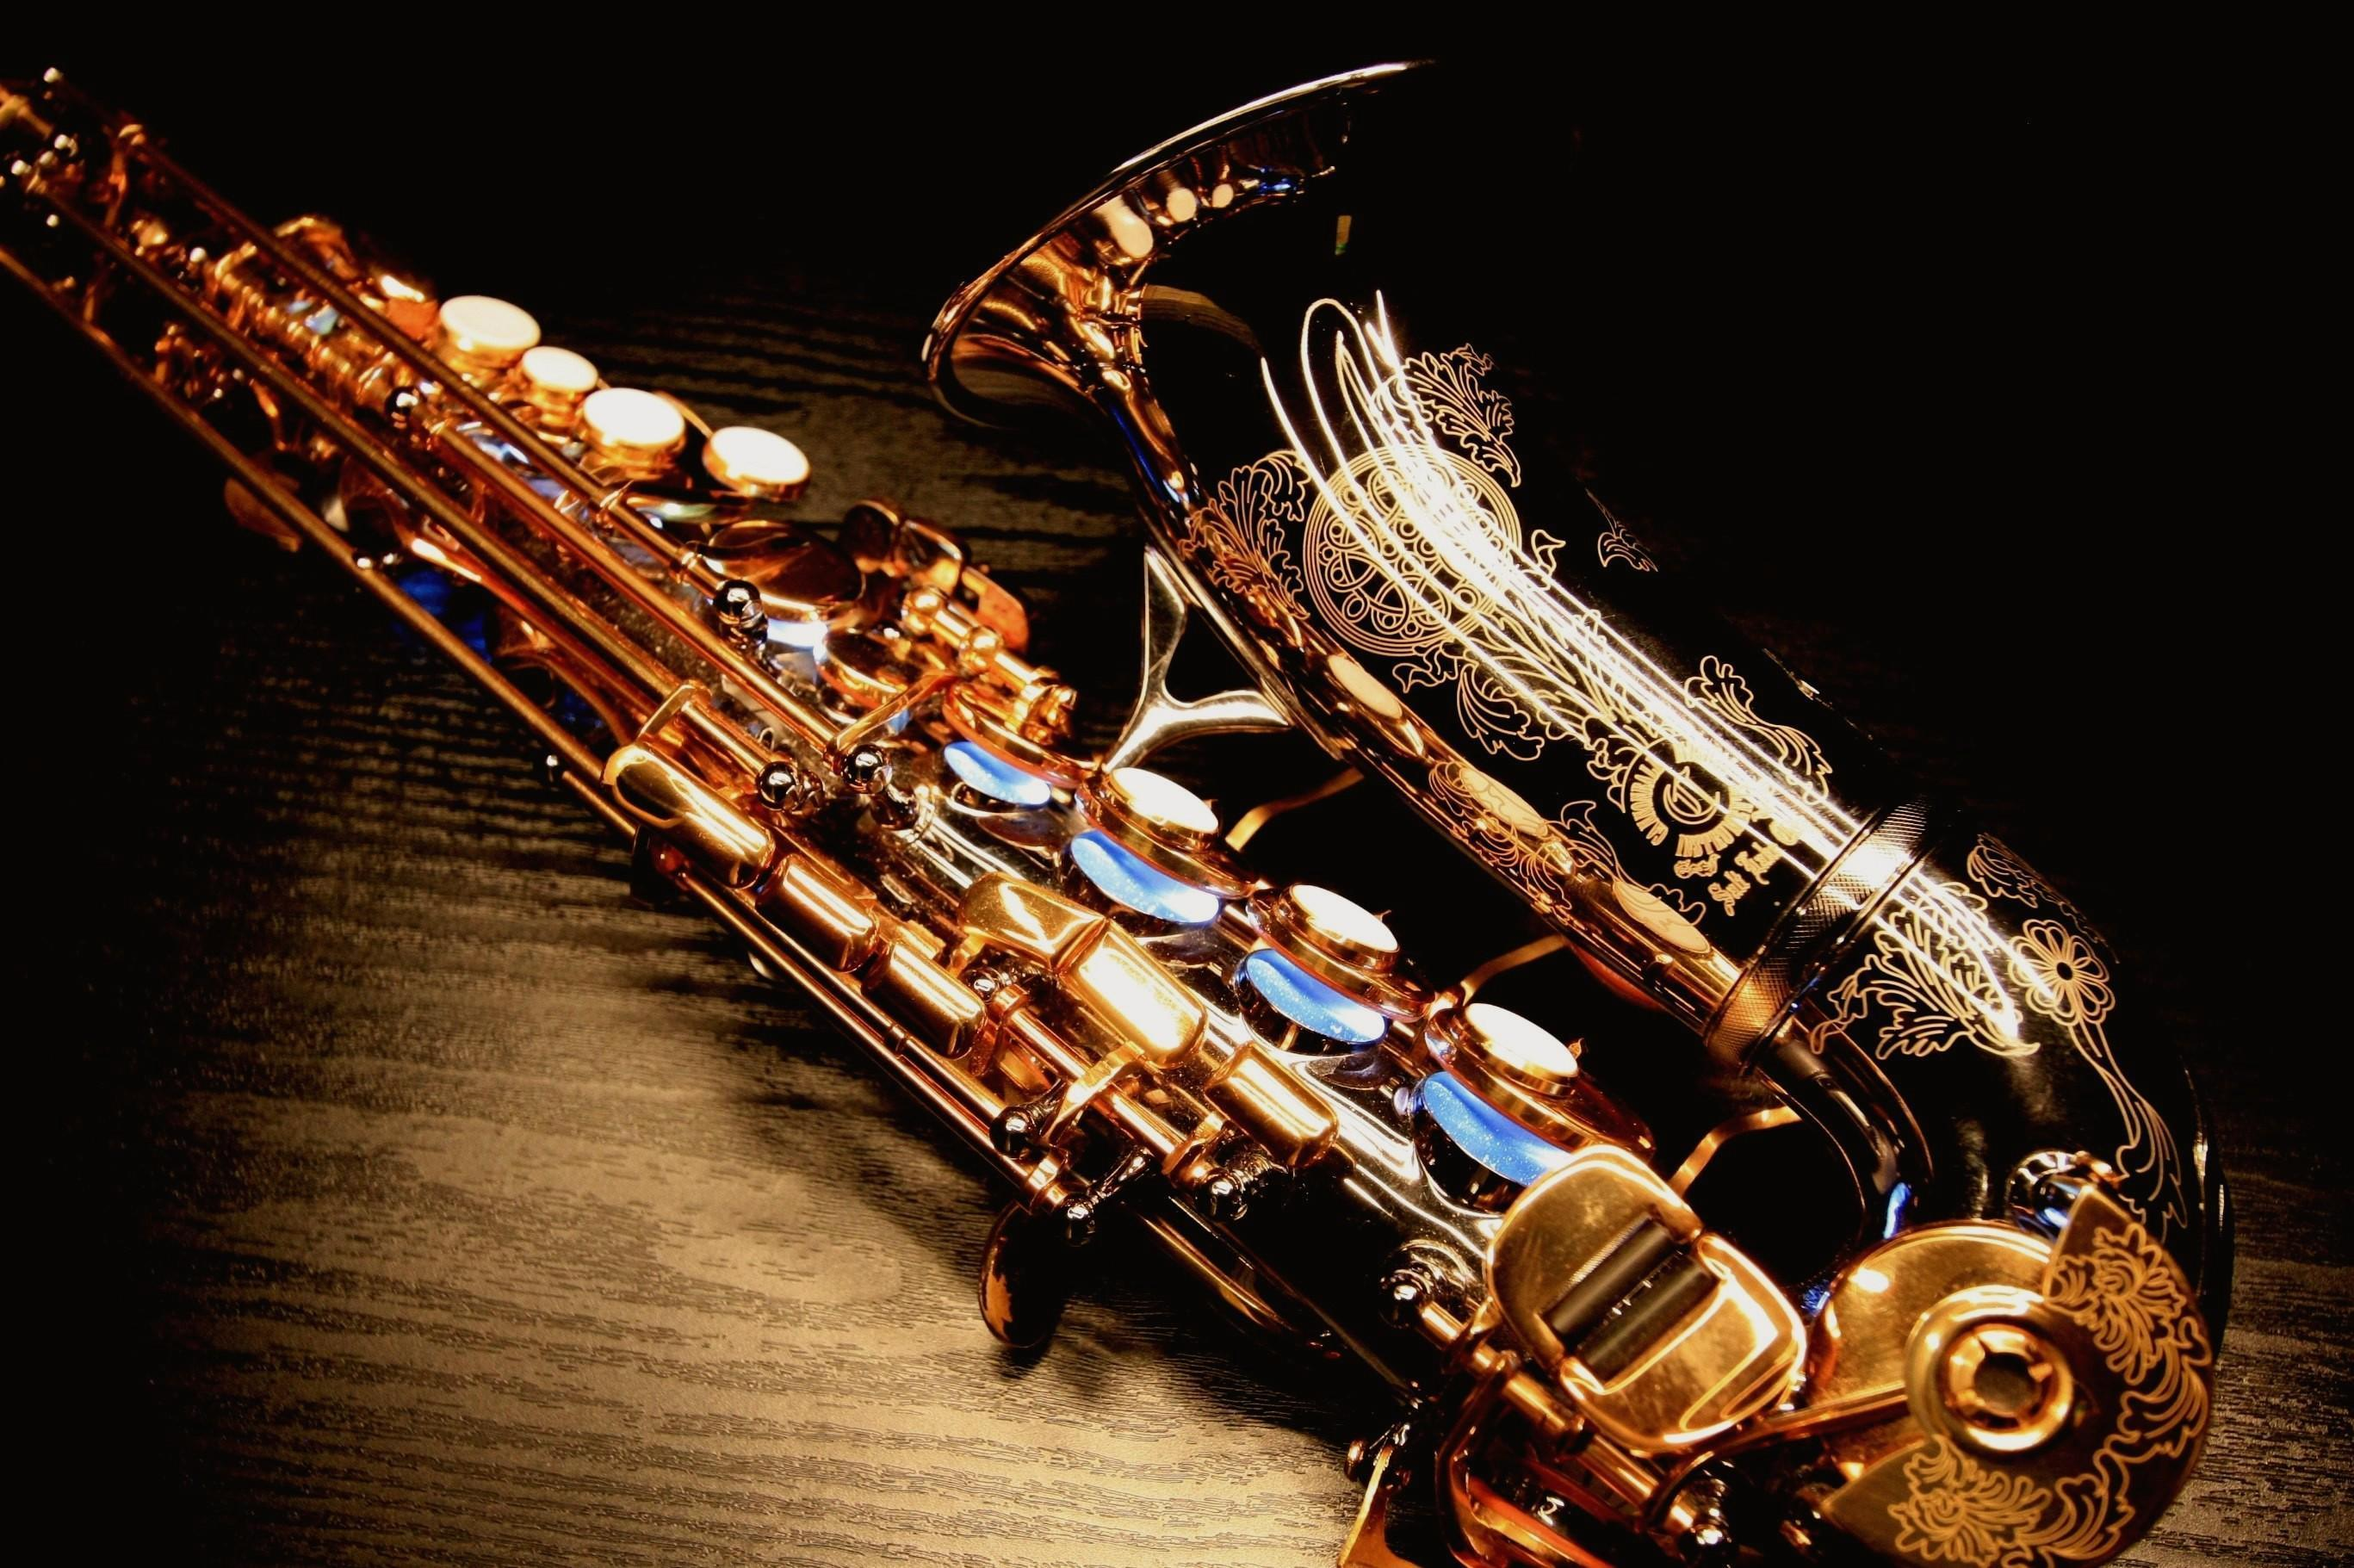 Saxophone Wallpaper Phone | sandy | Pinterest | Saxophones and ...